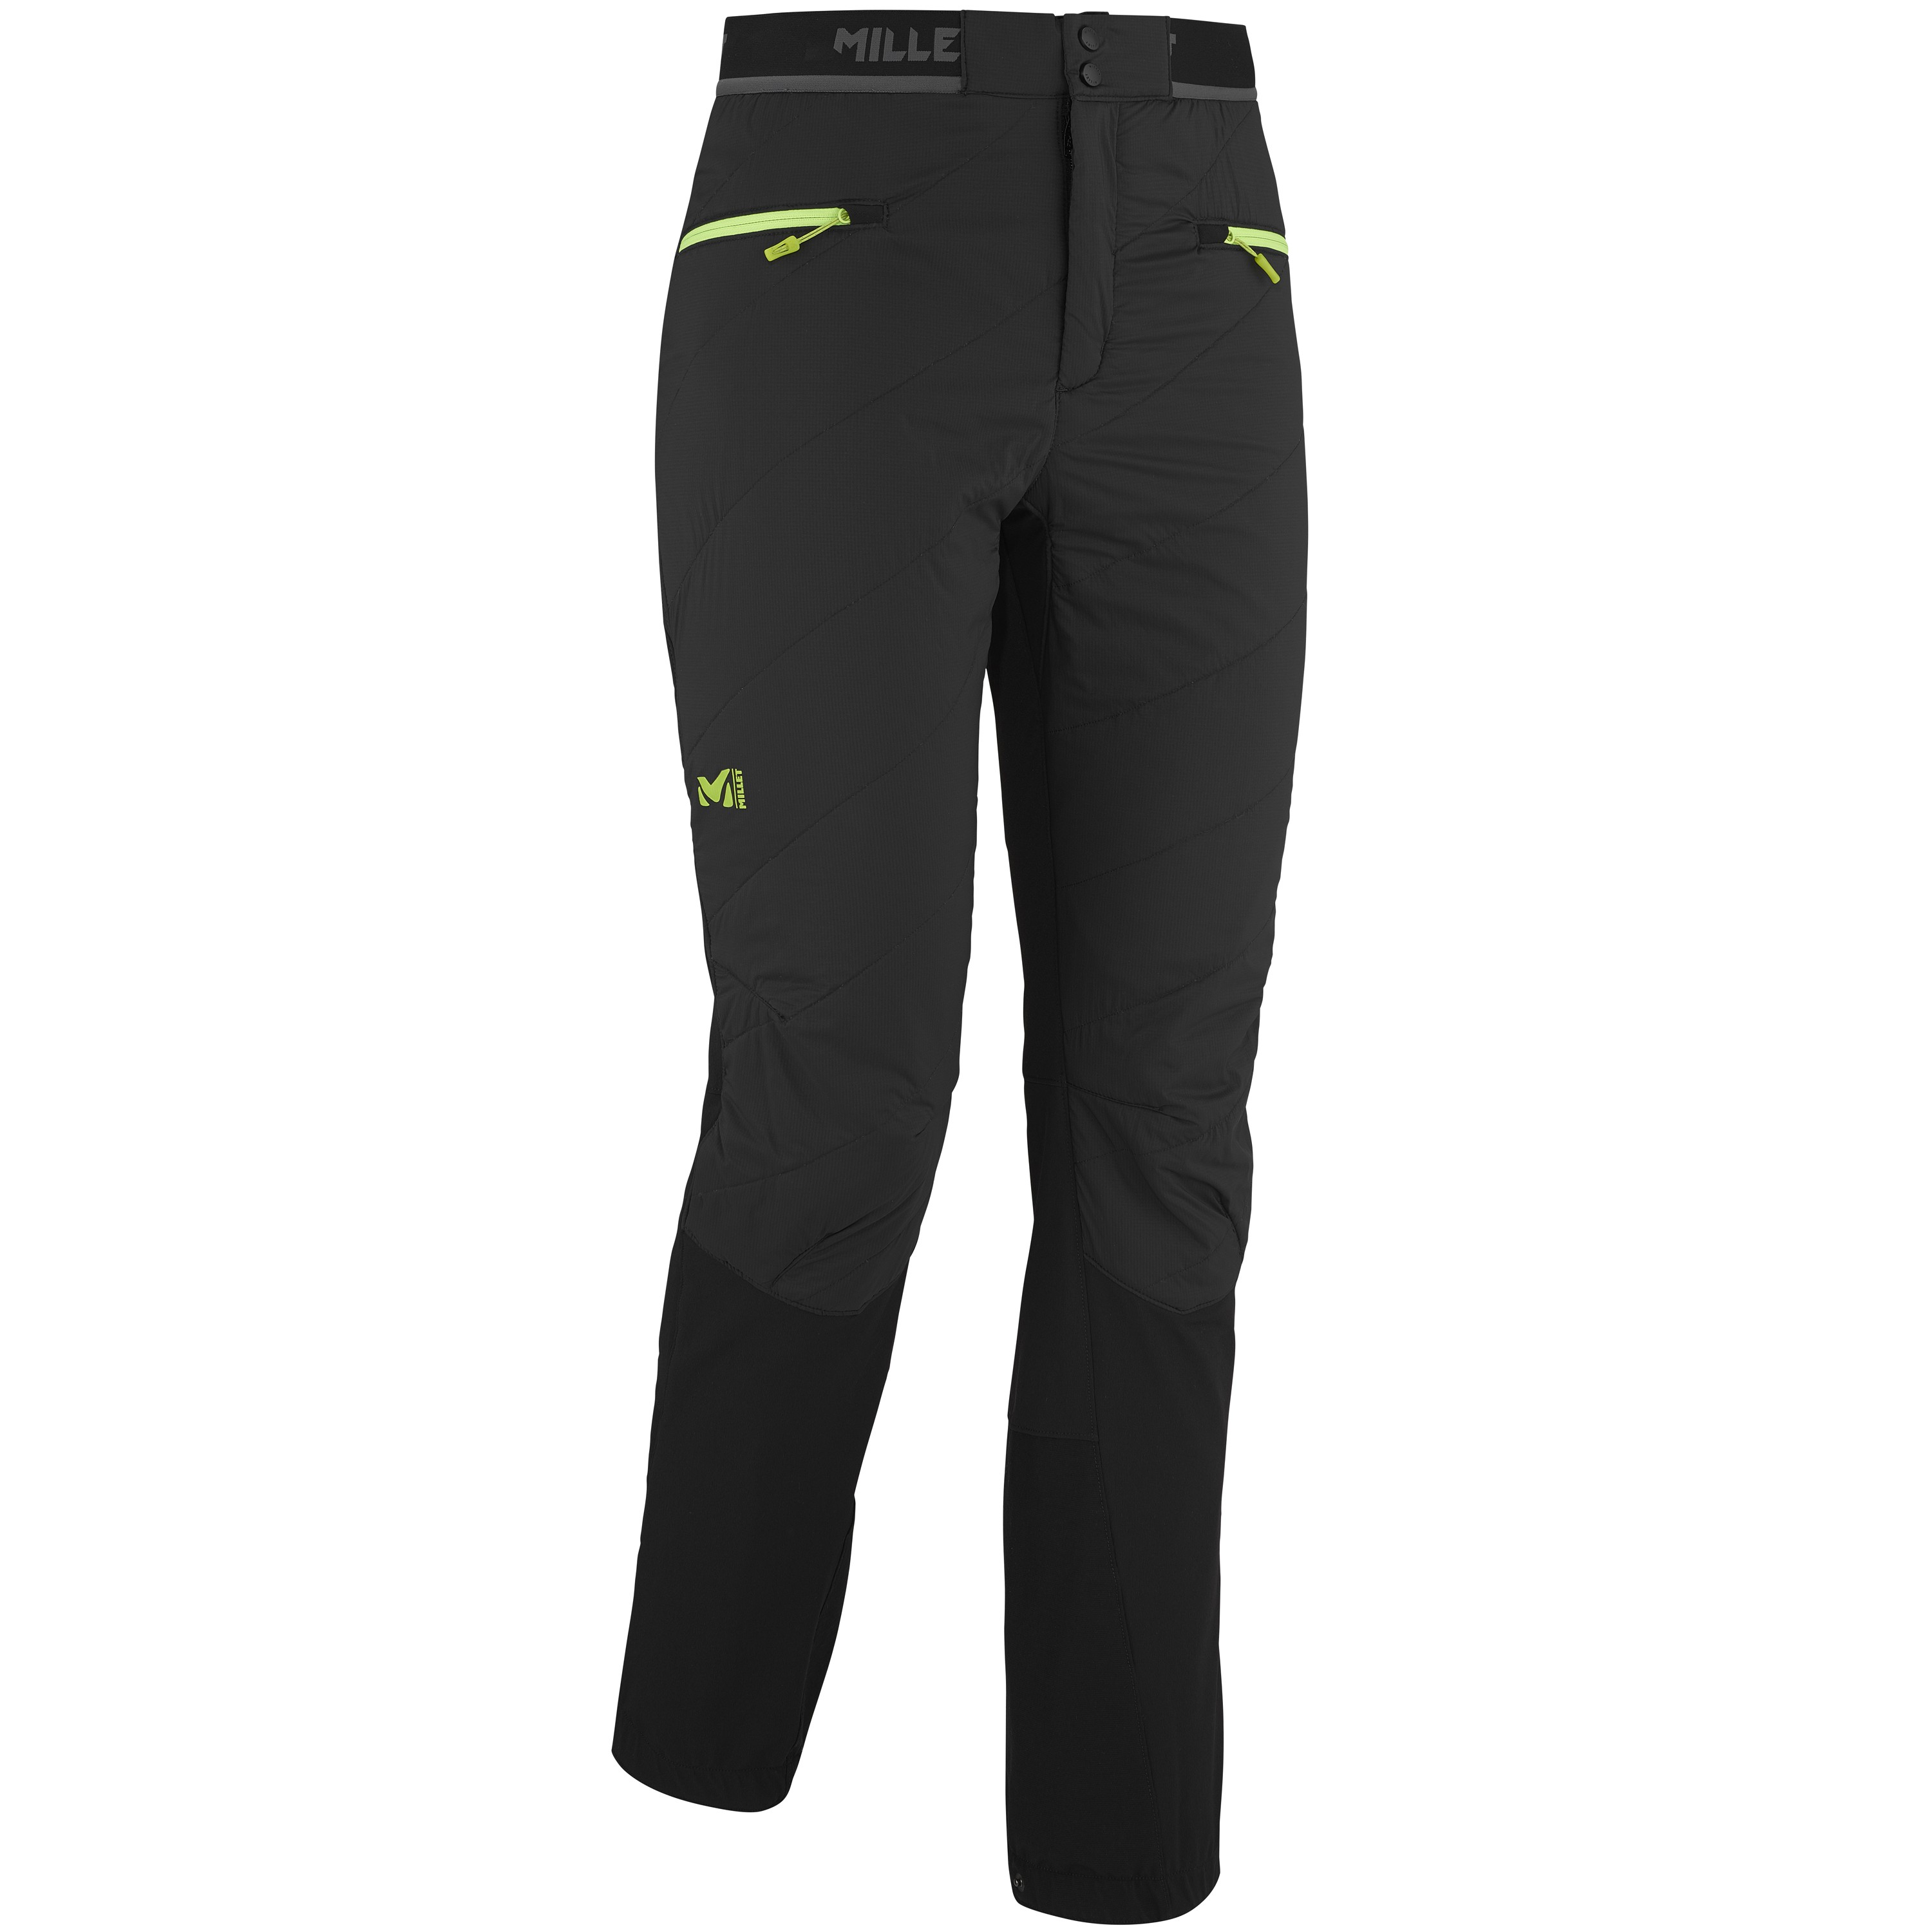 TOURING SPEED XCS PANT